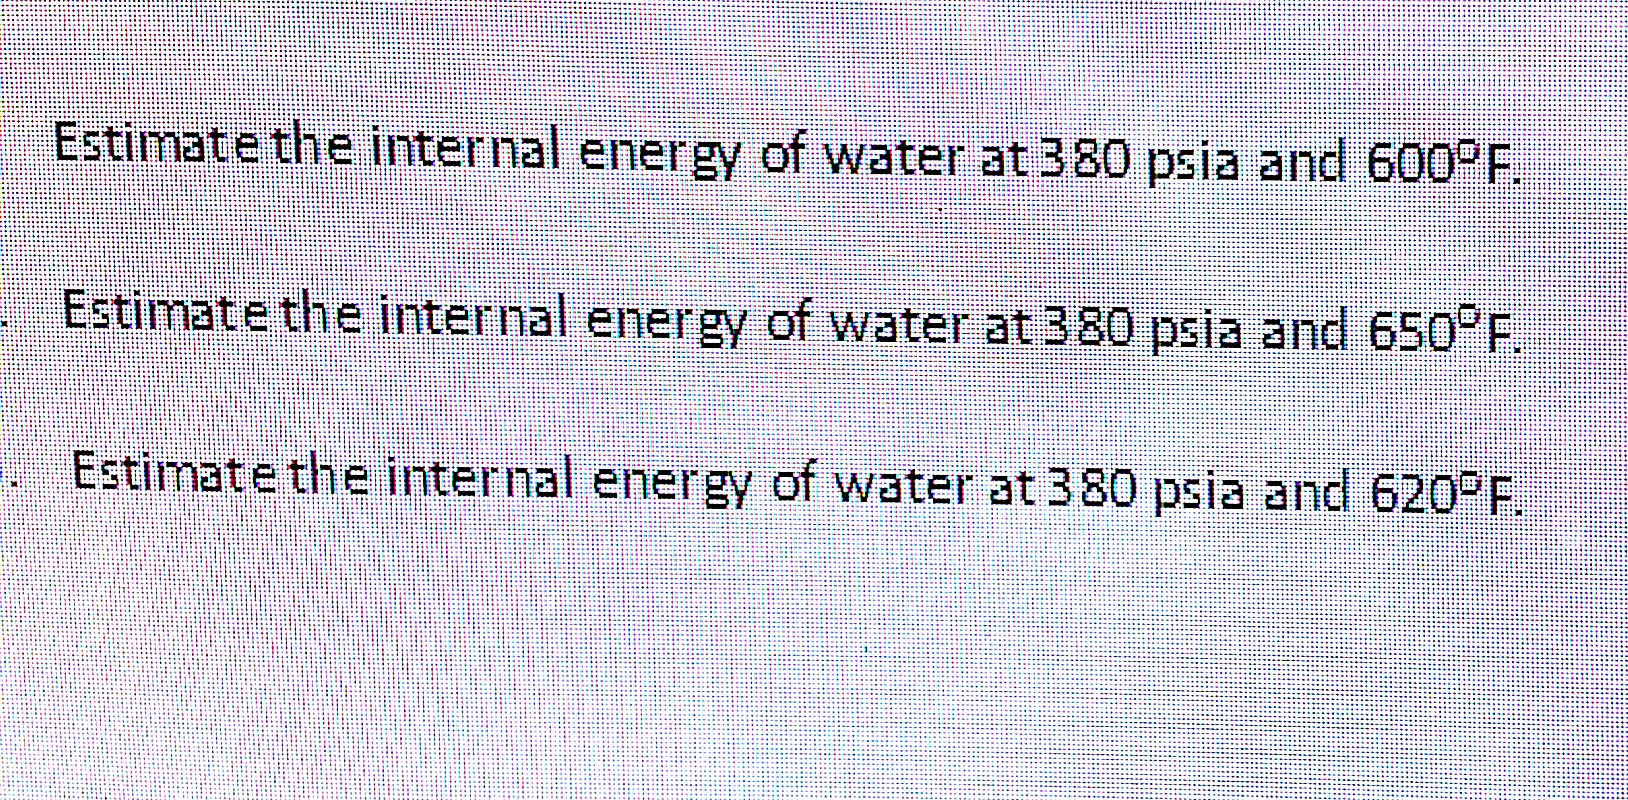 Estimate the internal energy of water at 380 psia